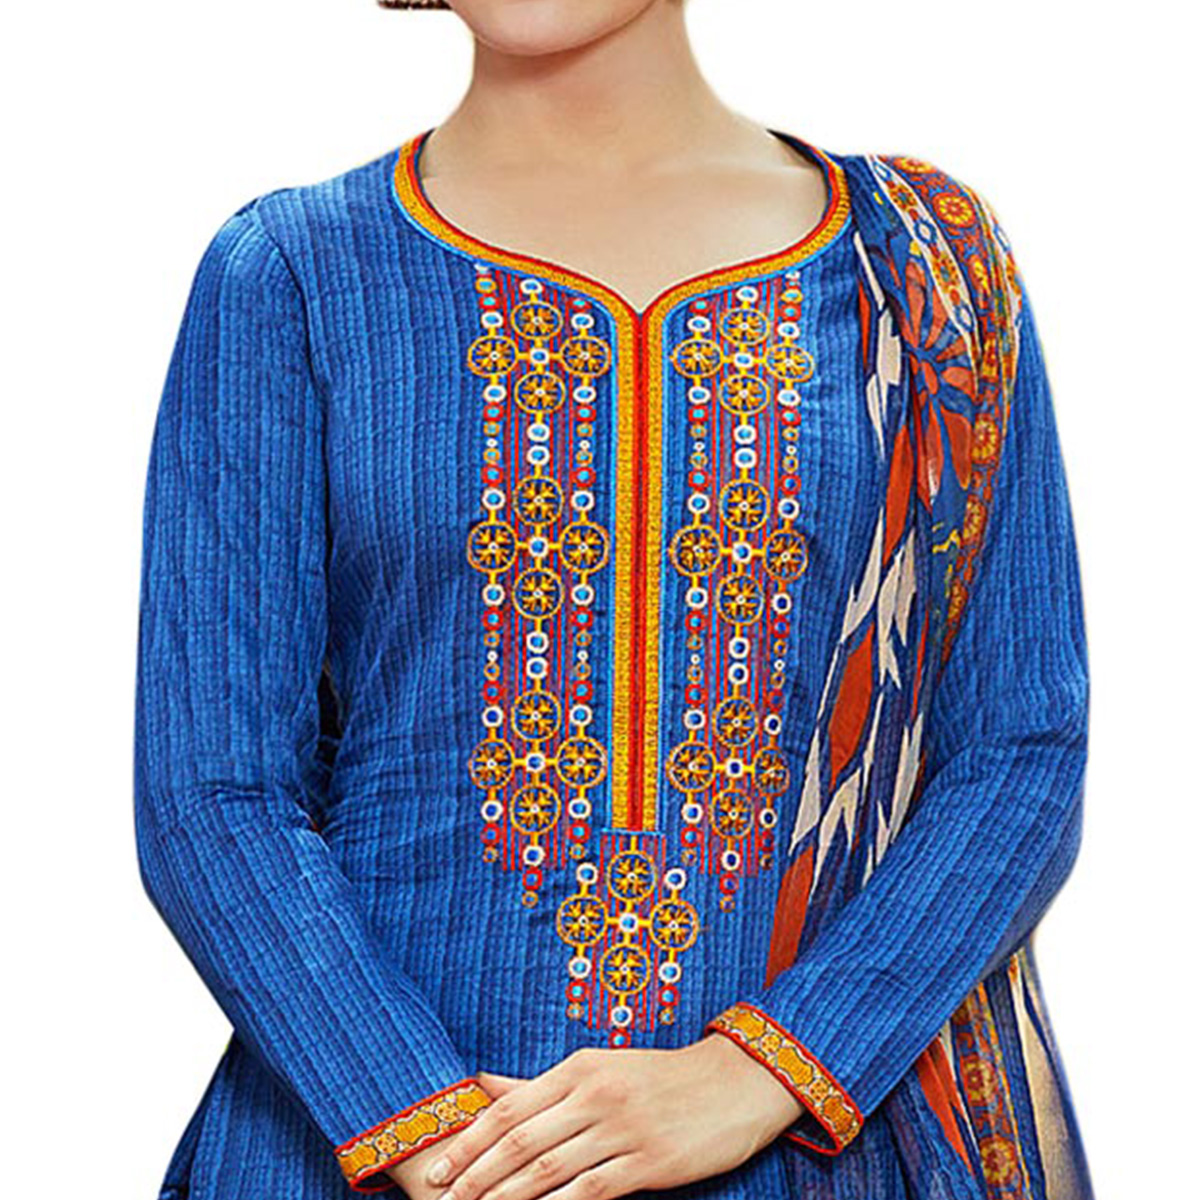 Dazzling Blue Colored Designer Embroidered Cotton Suit